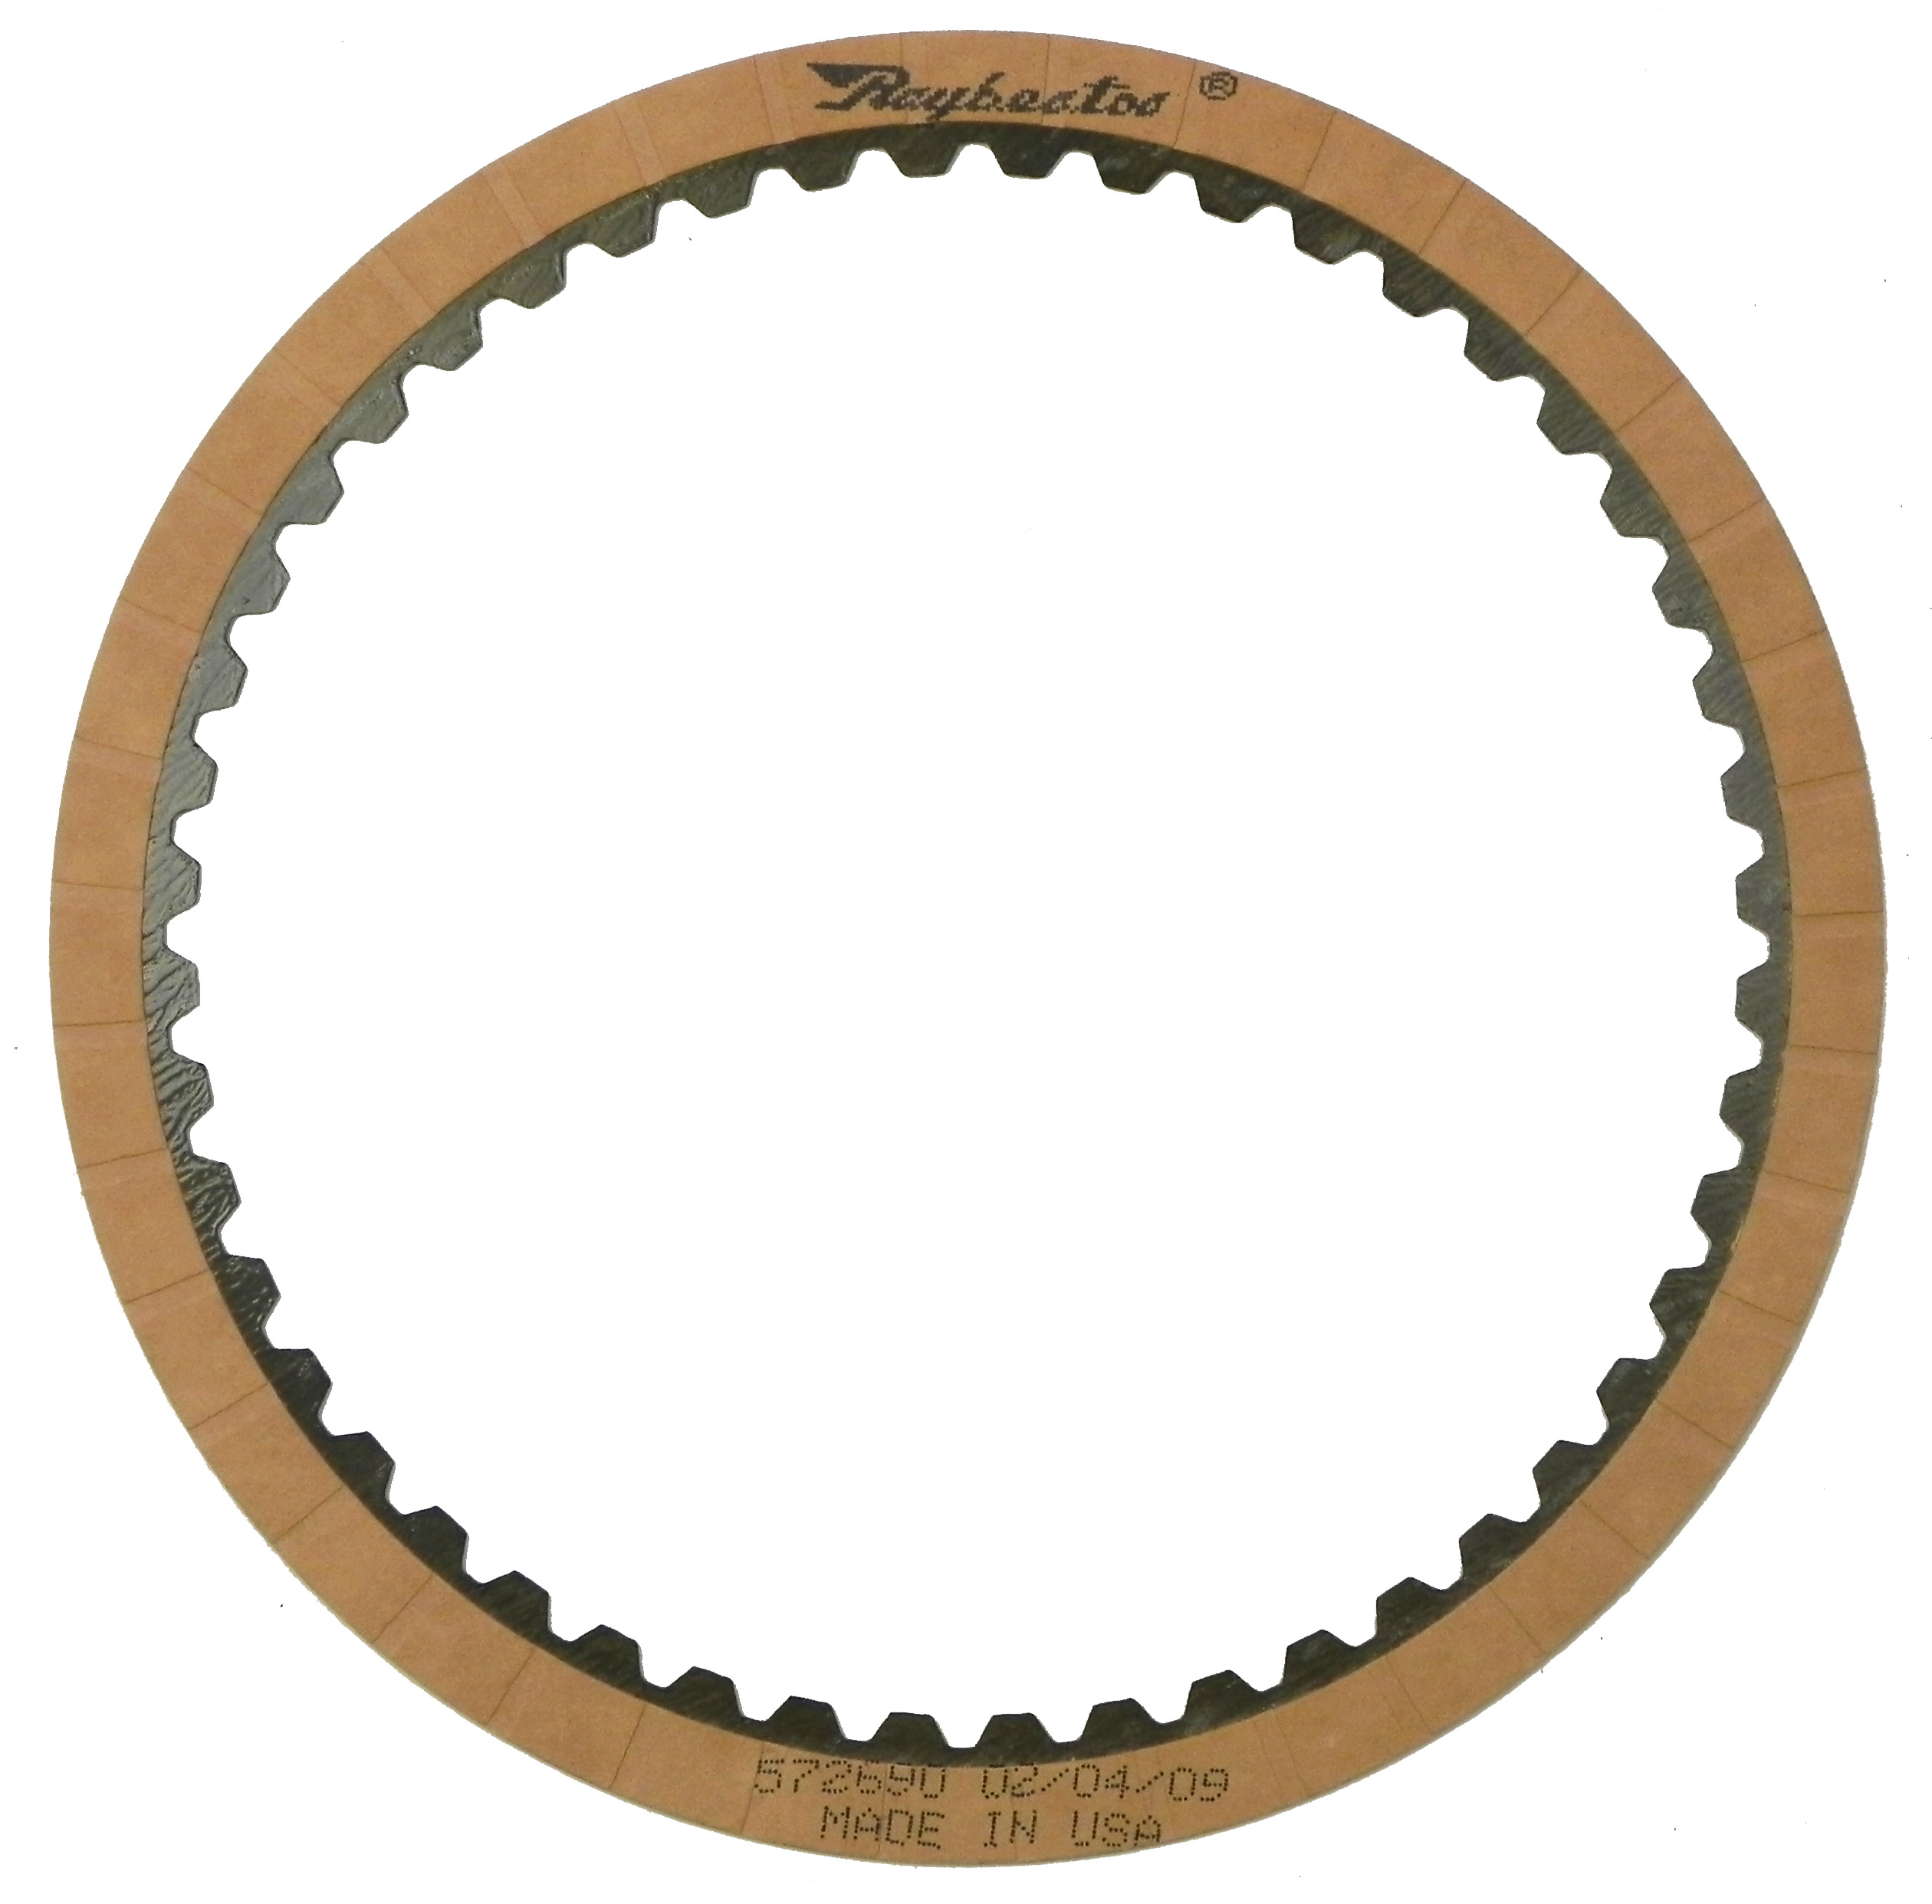 R572690 | 2004-ON Friction Clutch Plate OE Replacement B3 Low, Reverse Brake